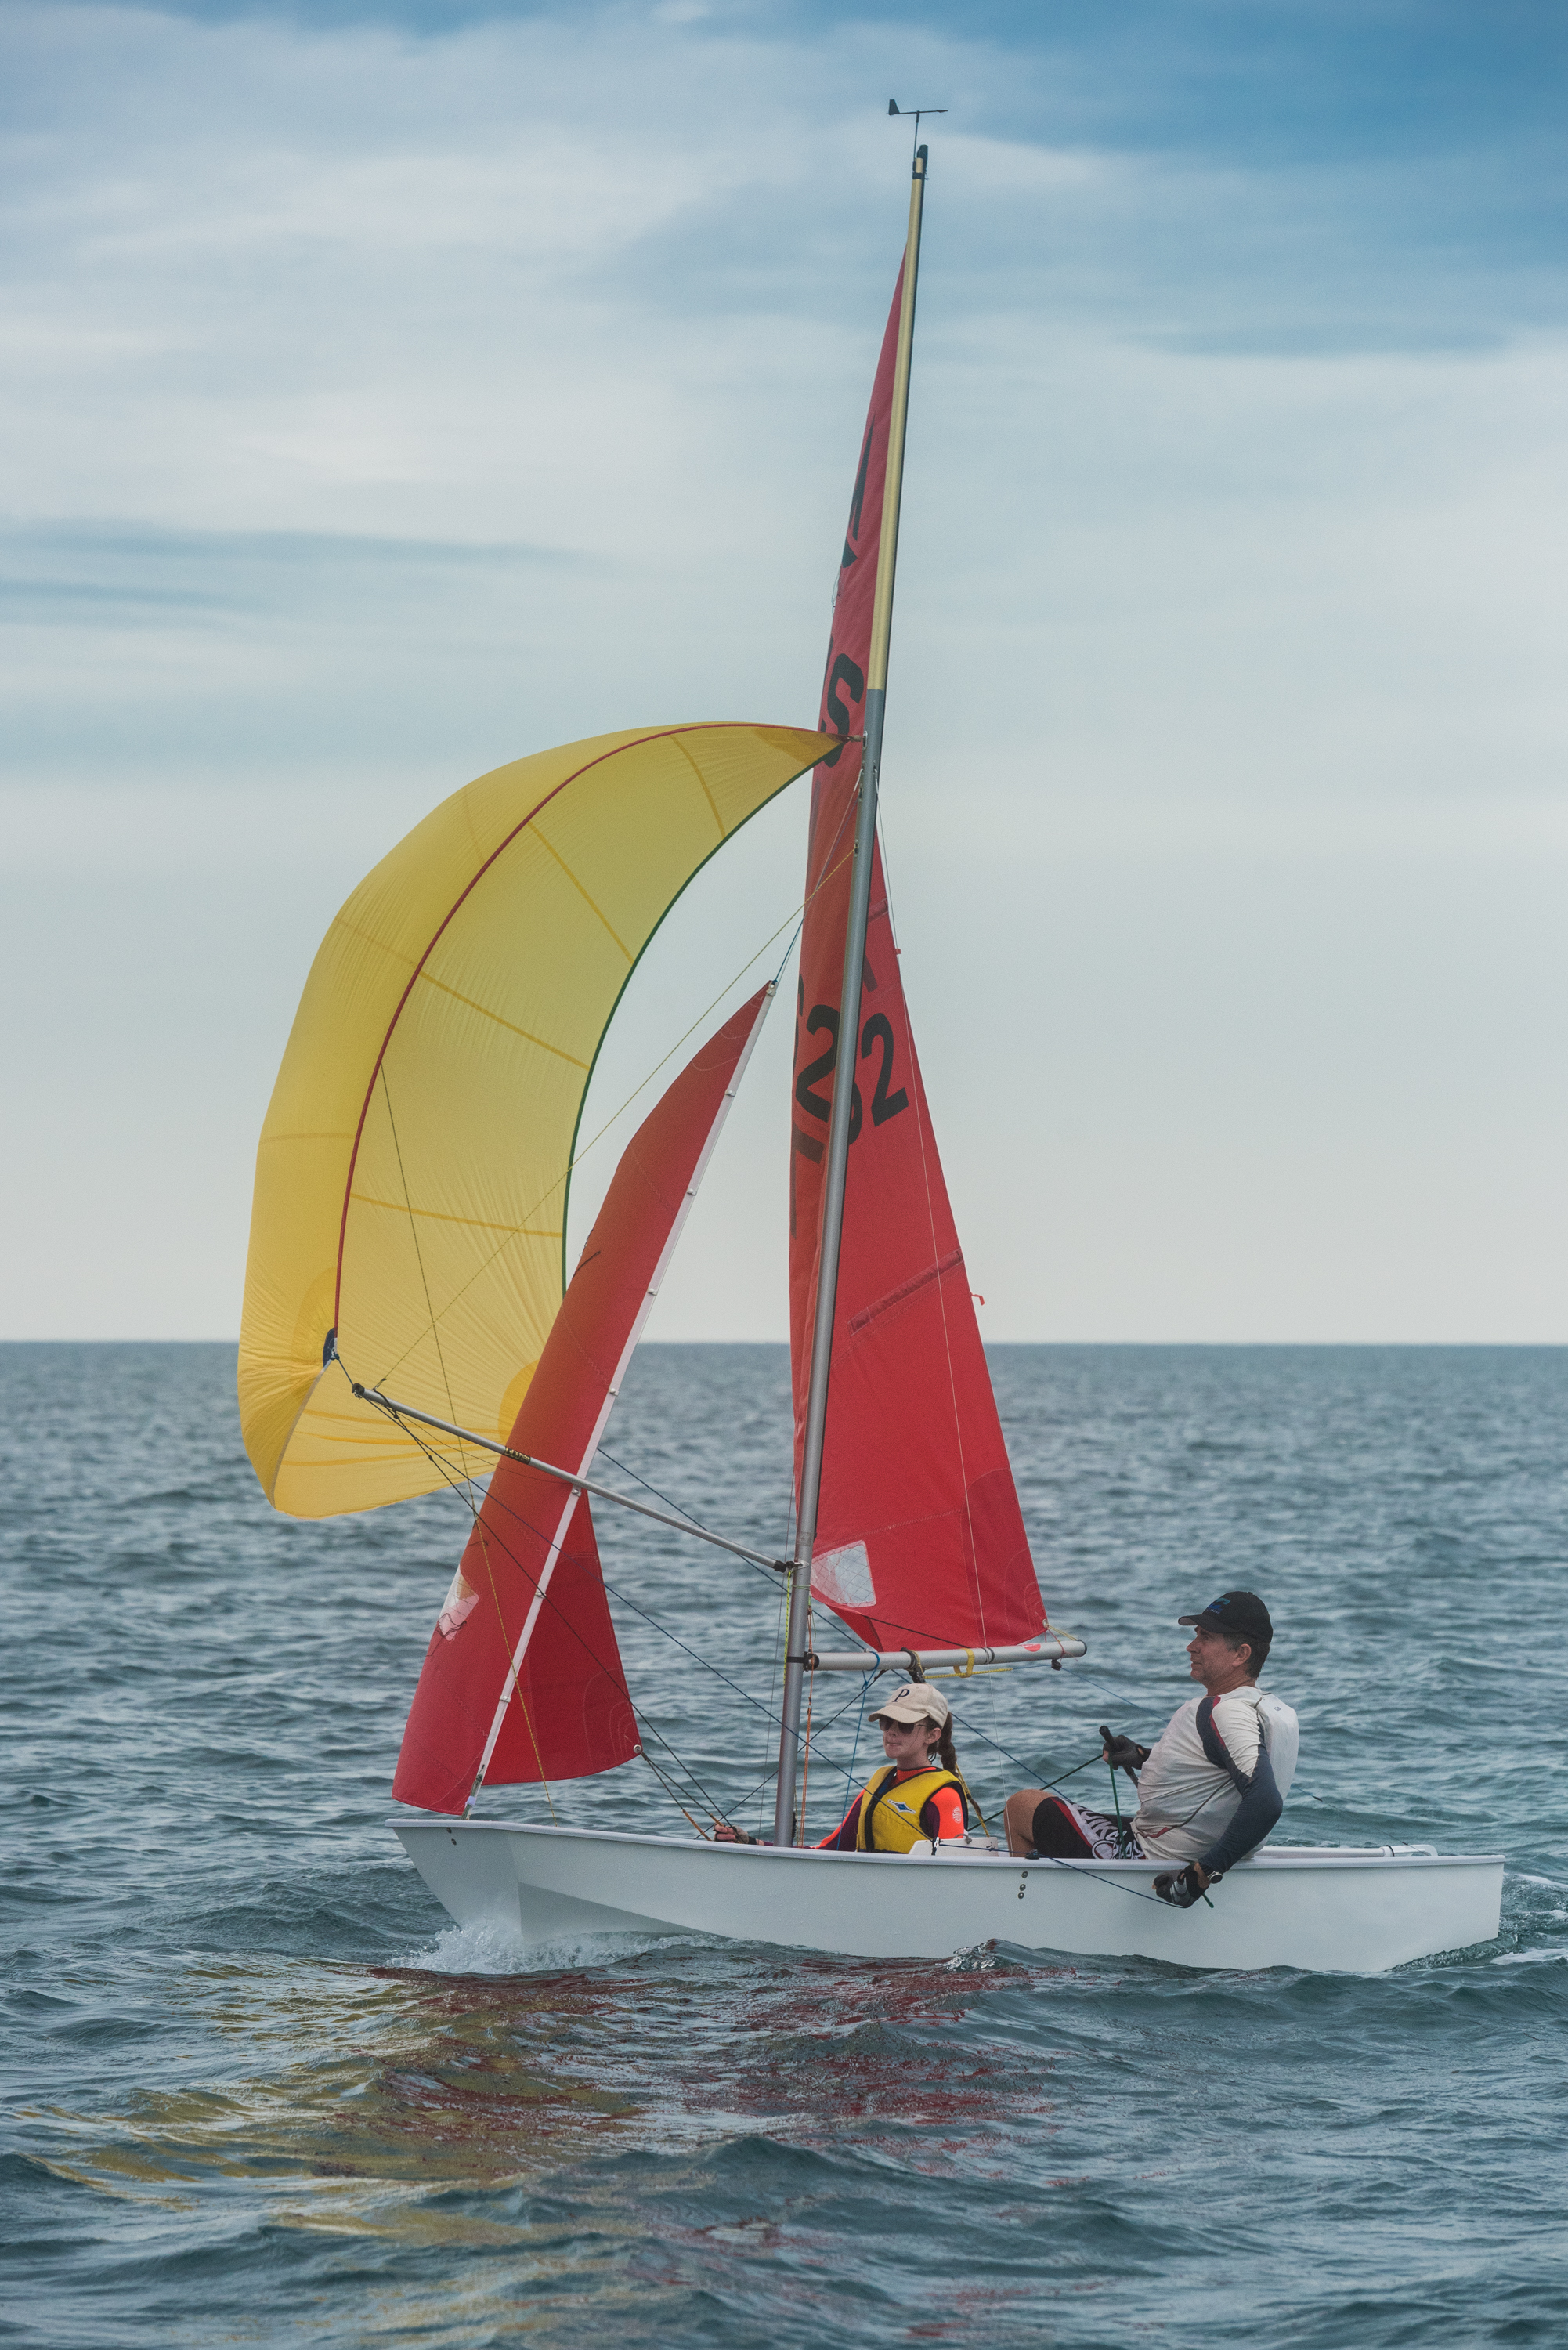 Damian and Emily Carey took out the Australian Mirror Championship with a race to spare. Photo: Karl Olsen.